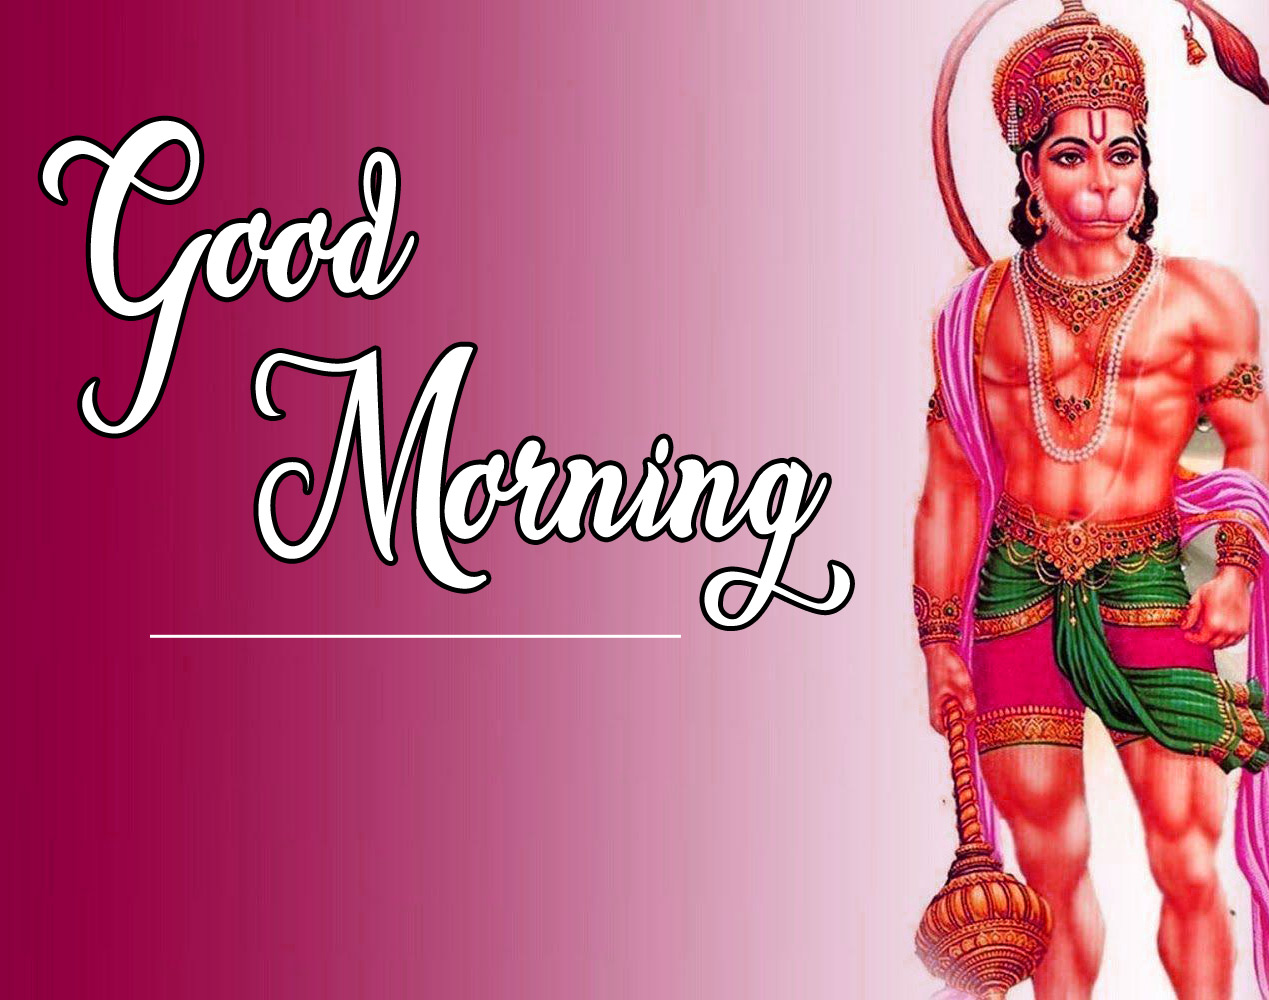 Lord Hanuman Ji good morning 21